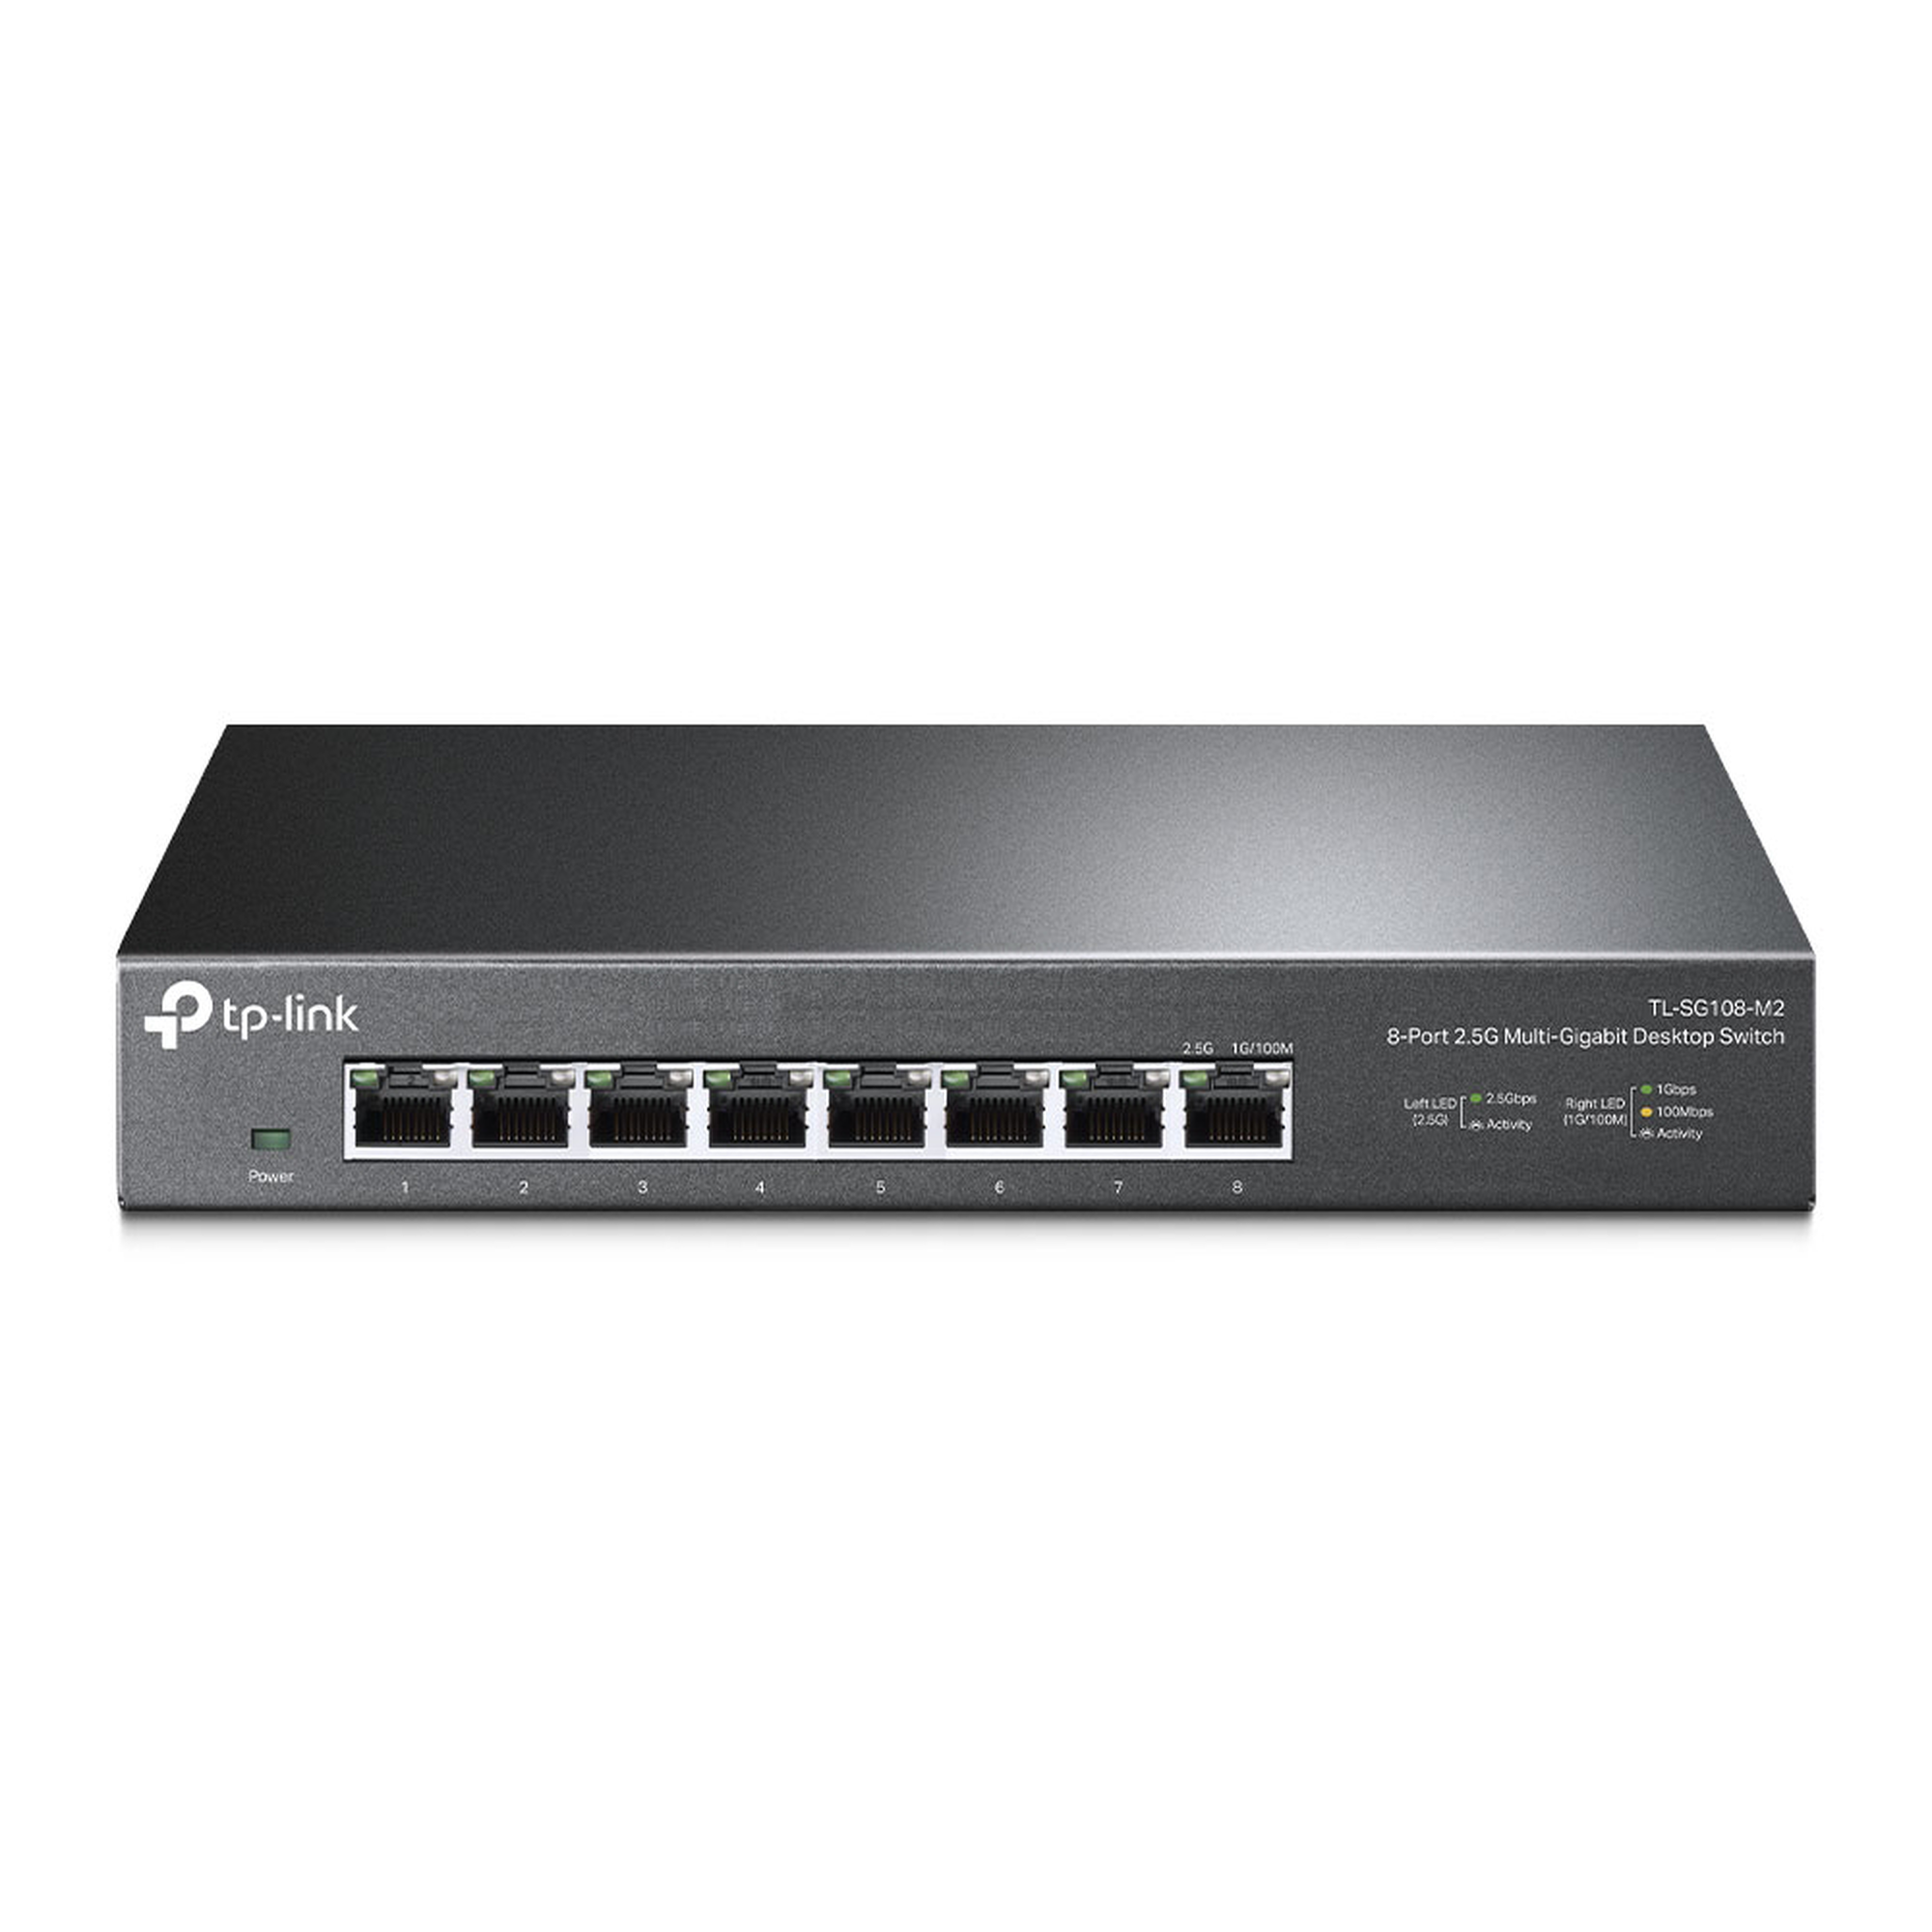 Switch Gigabit no administrable de 8 puertos 100 Mbps/ 1 Gbps/ 2.5 Gbps ideal para WiFi 6